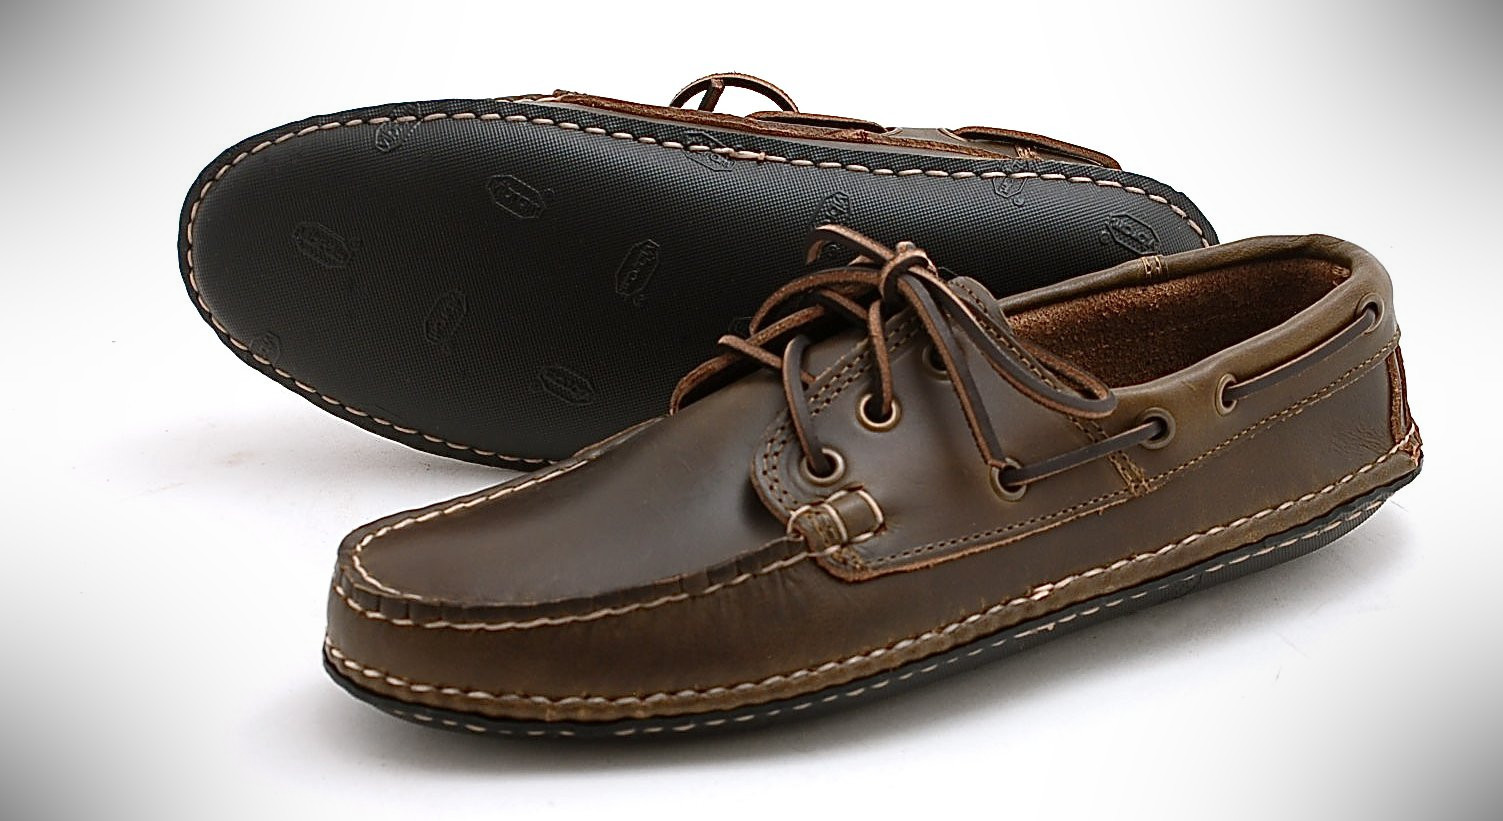 Quoddy Moc II – boat shoes that are business casual